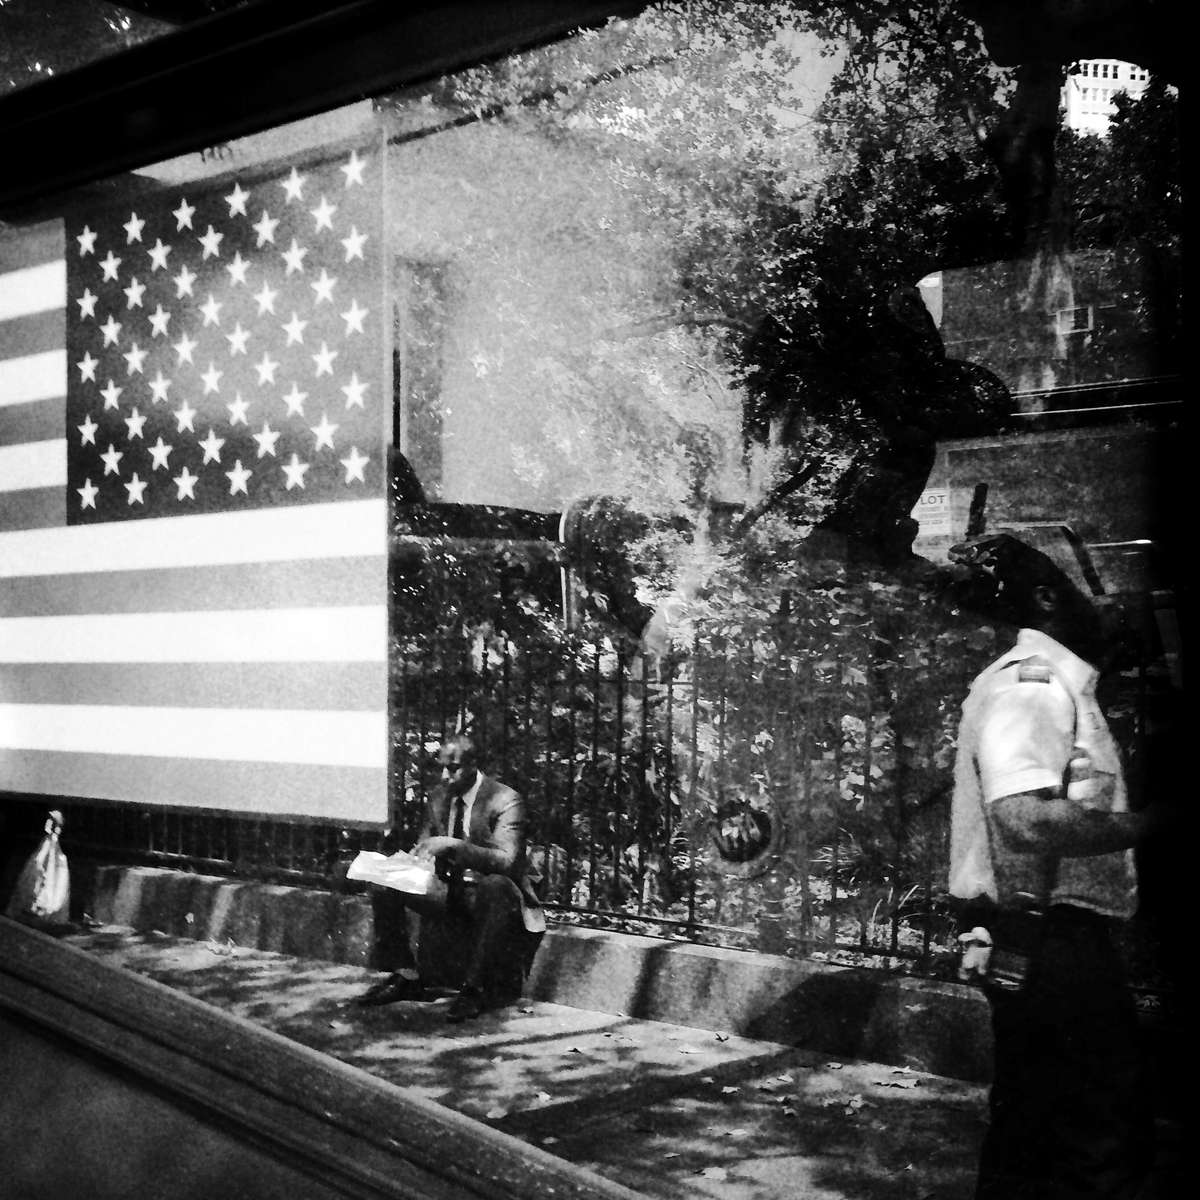 Reflection on New York Bus